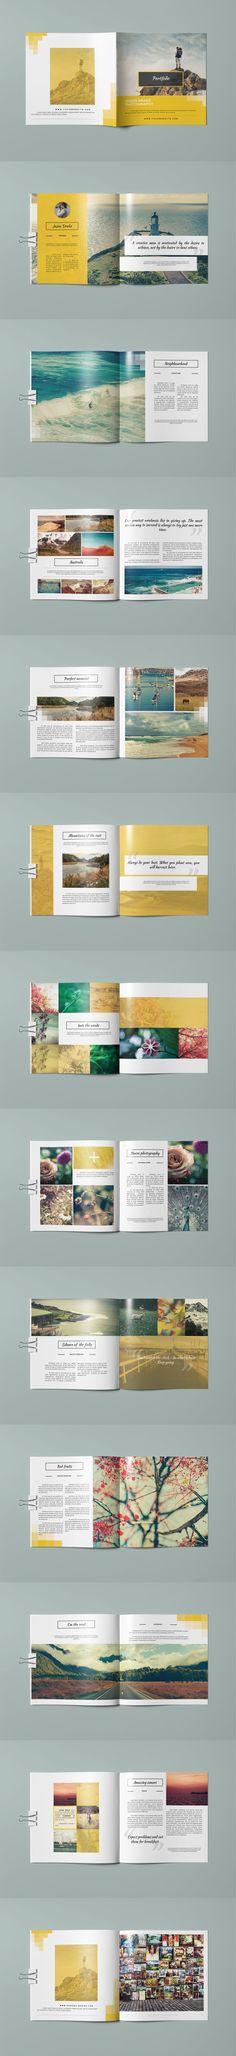 Portfolio Square Modern Catalog / Brochure 24 Pages Template InDesign INDD